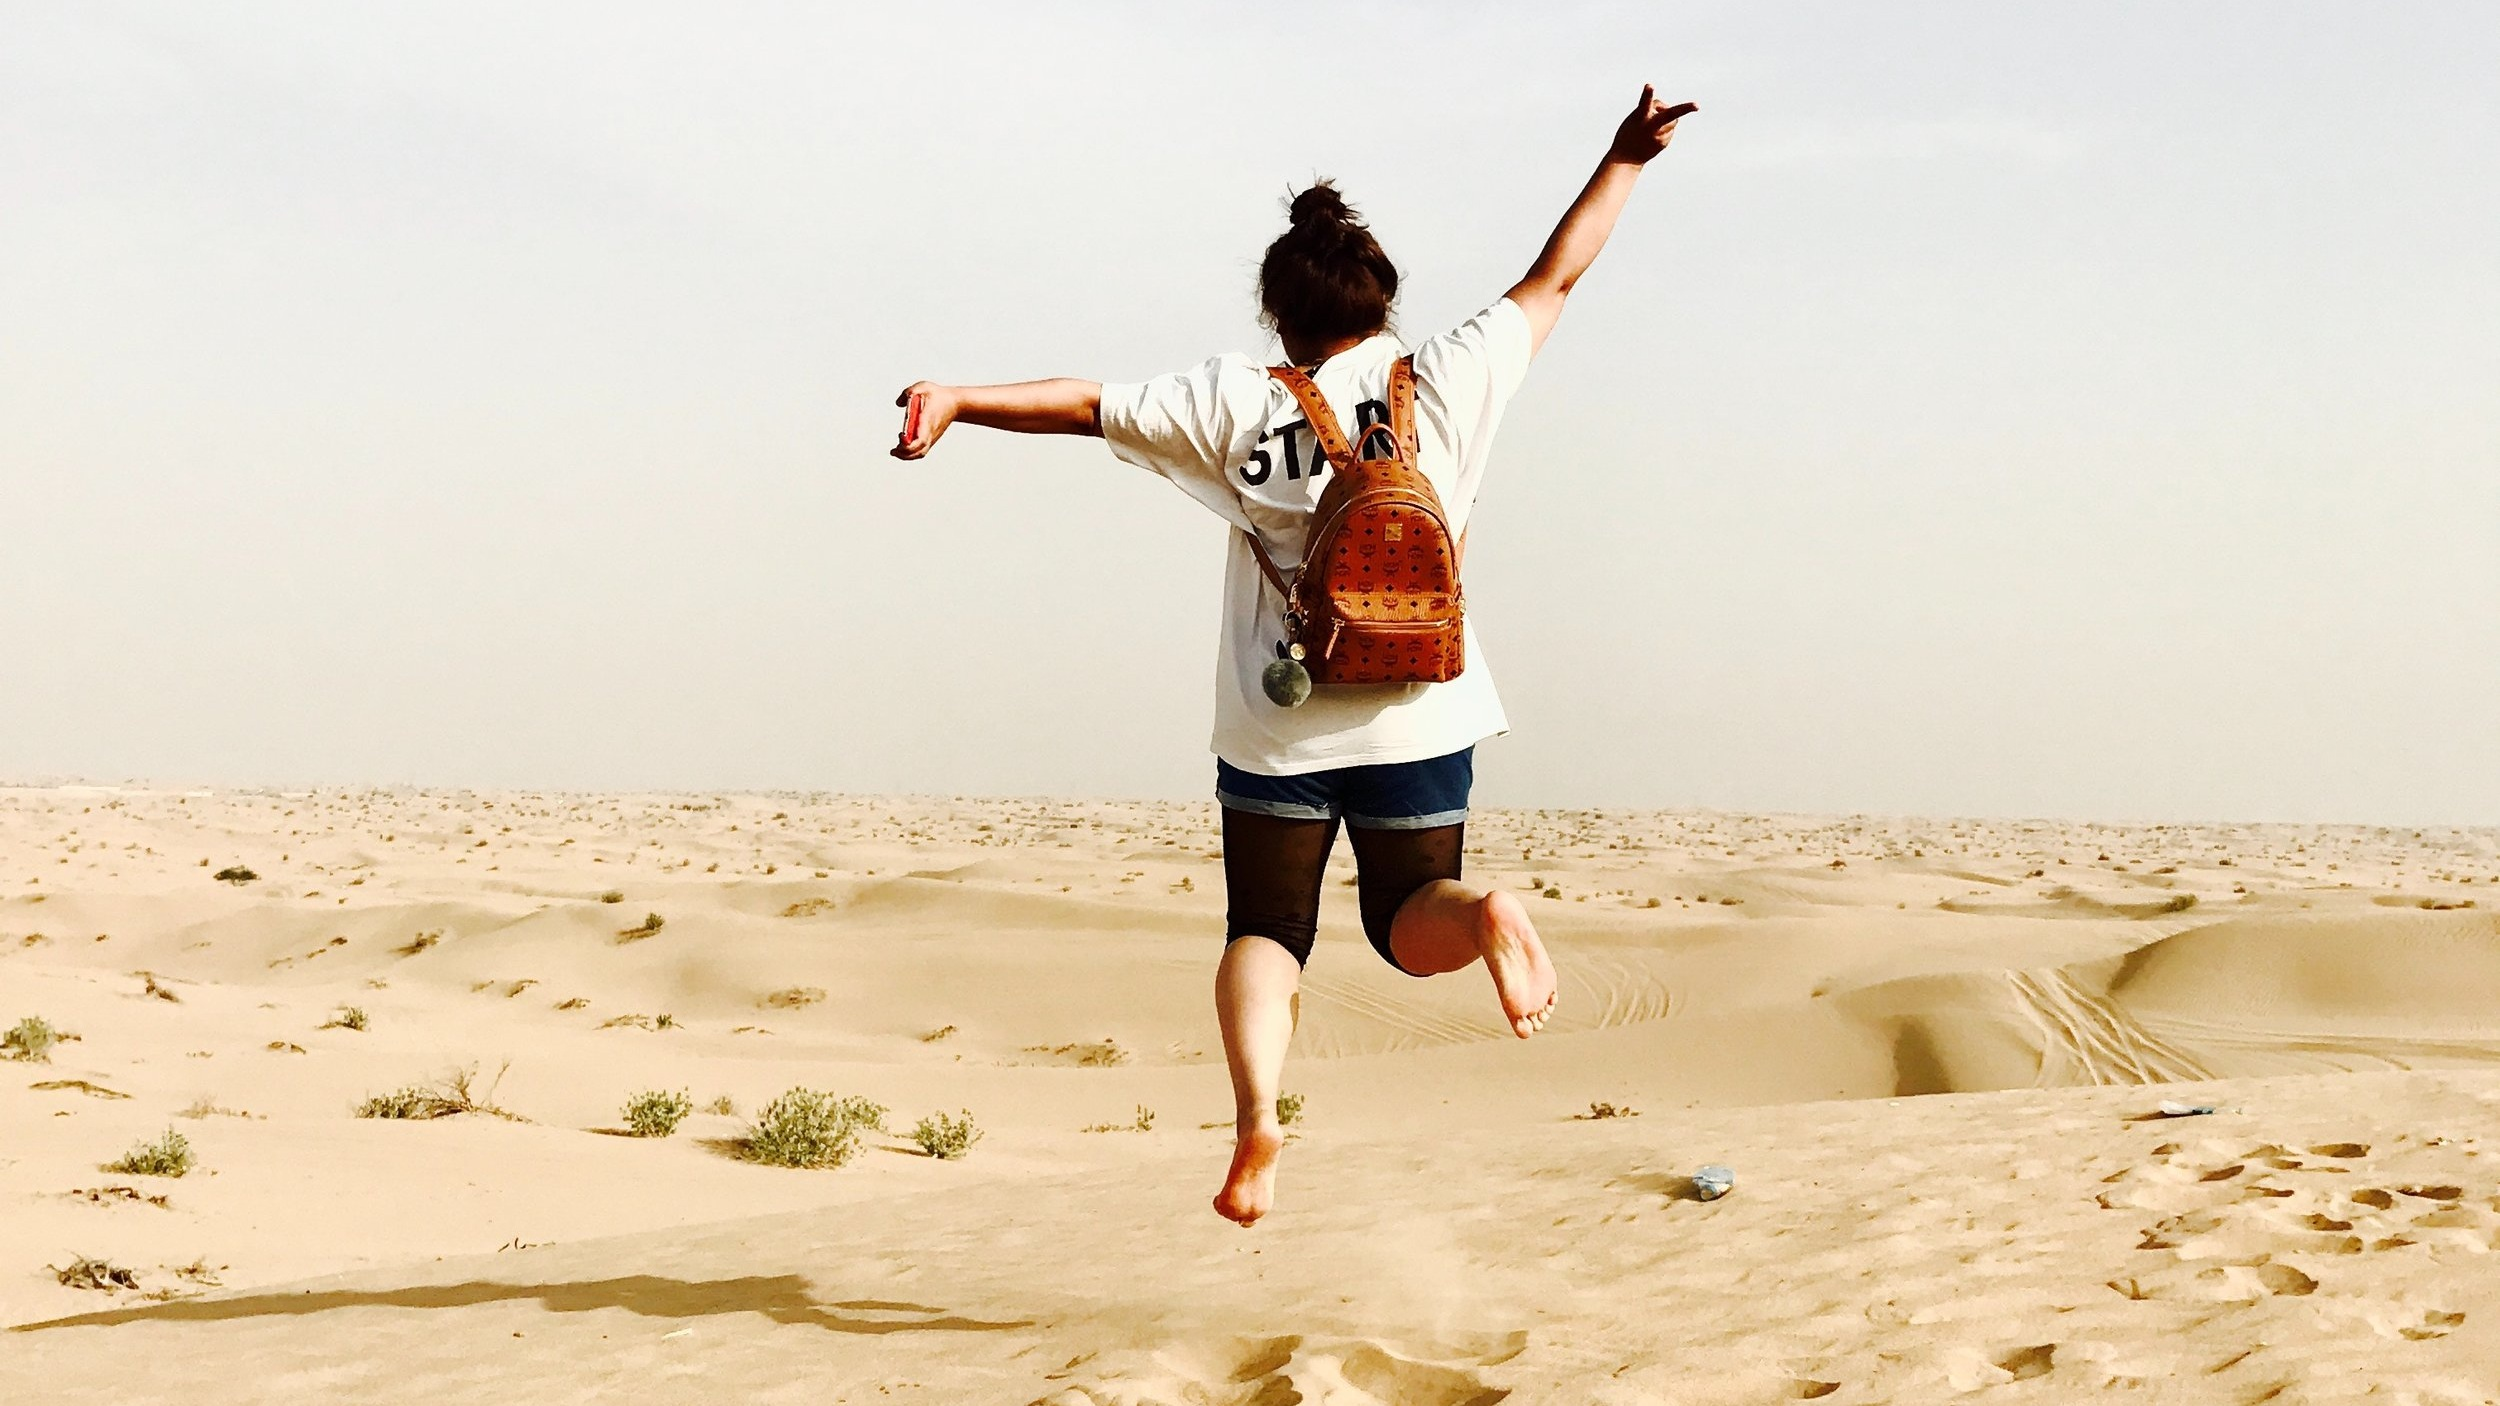 woman wearing backpack facing away jumping up in the desert sand